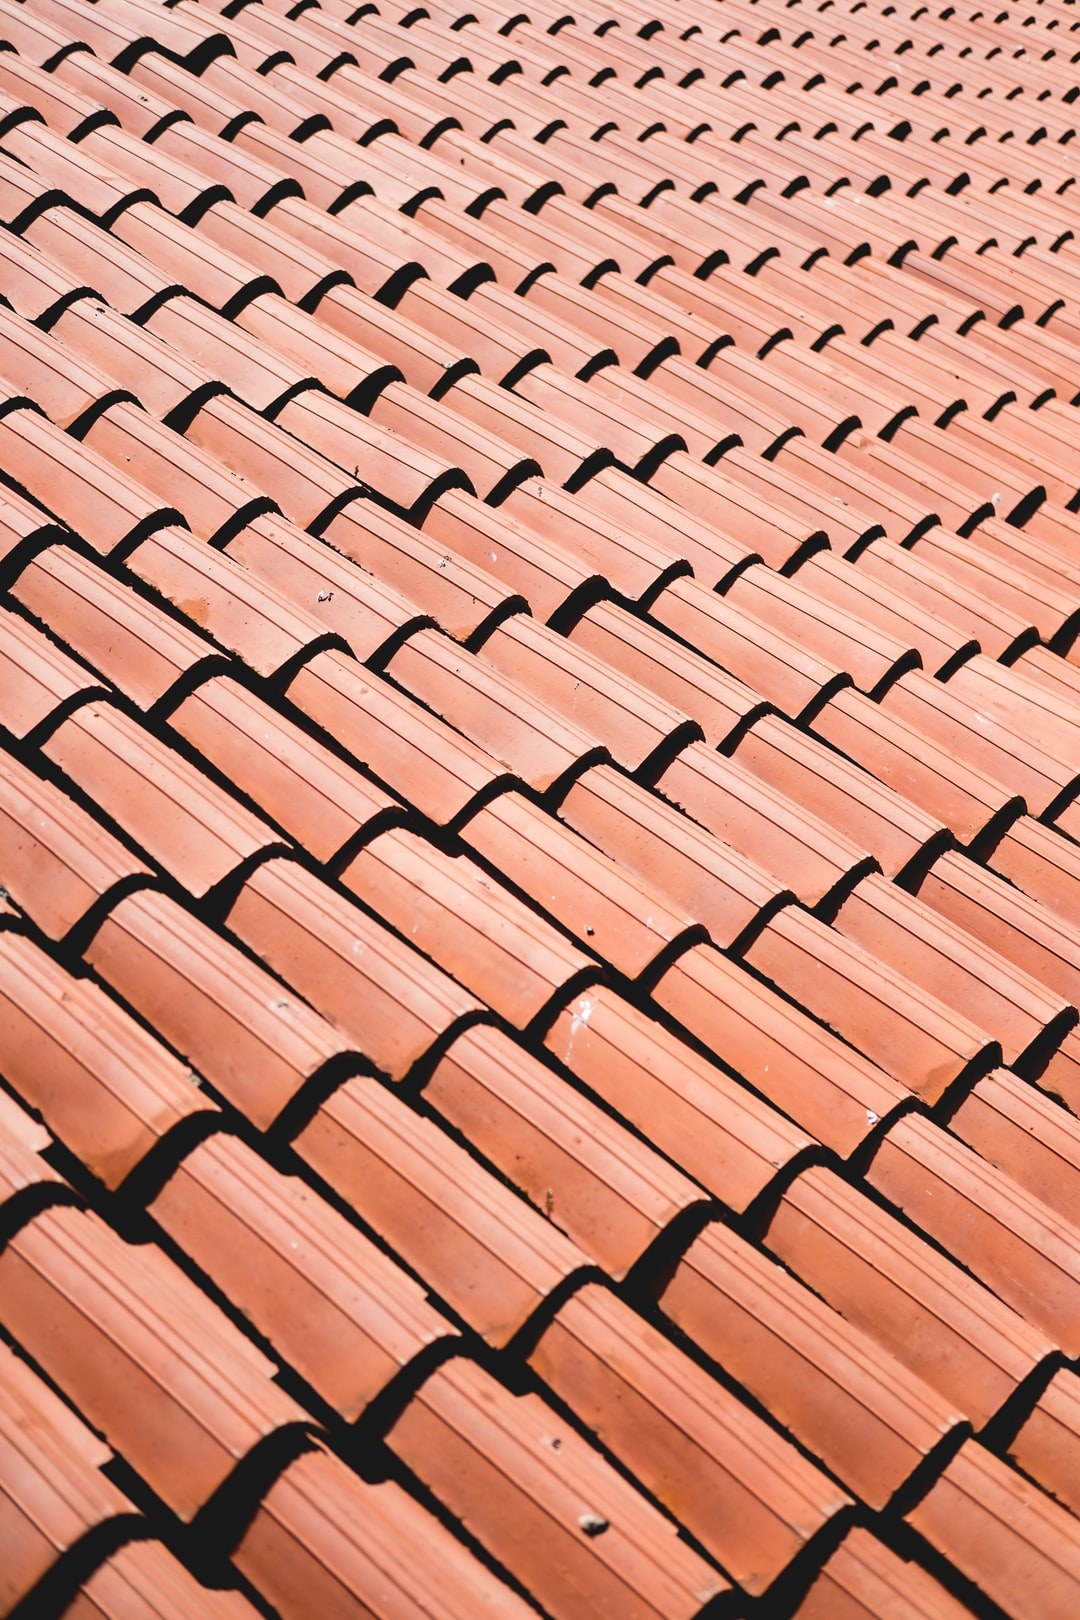 Chad Dodson Roofing Has Been a Trusted Contractor in Abilene For Over 20 Years